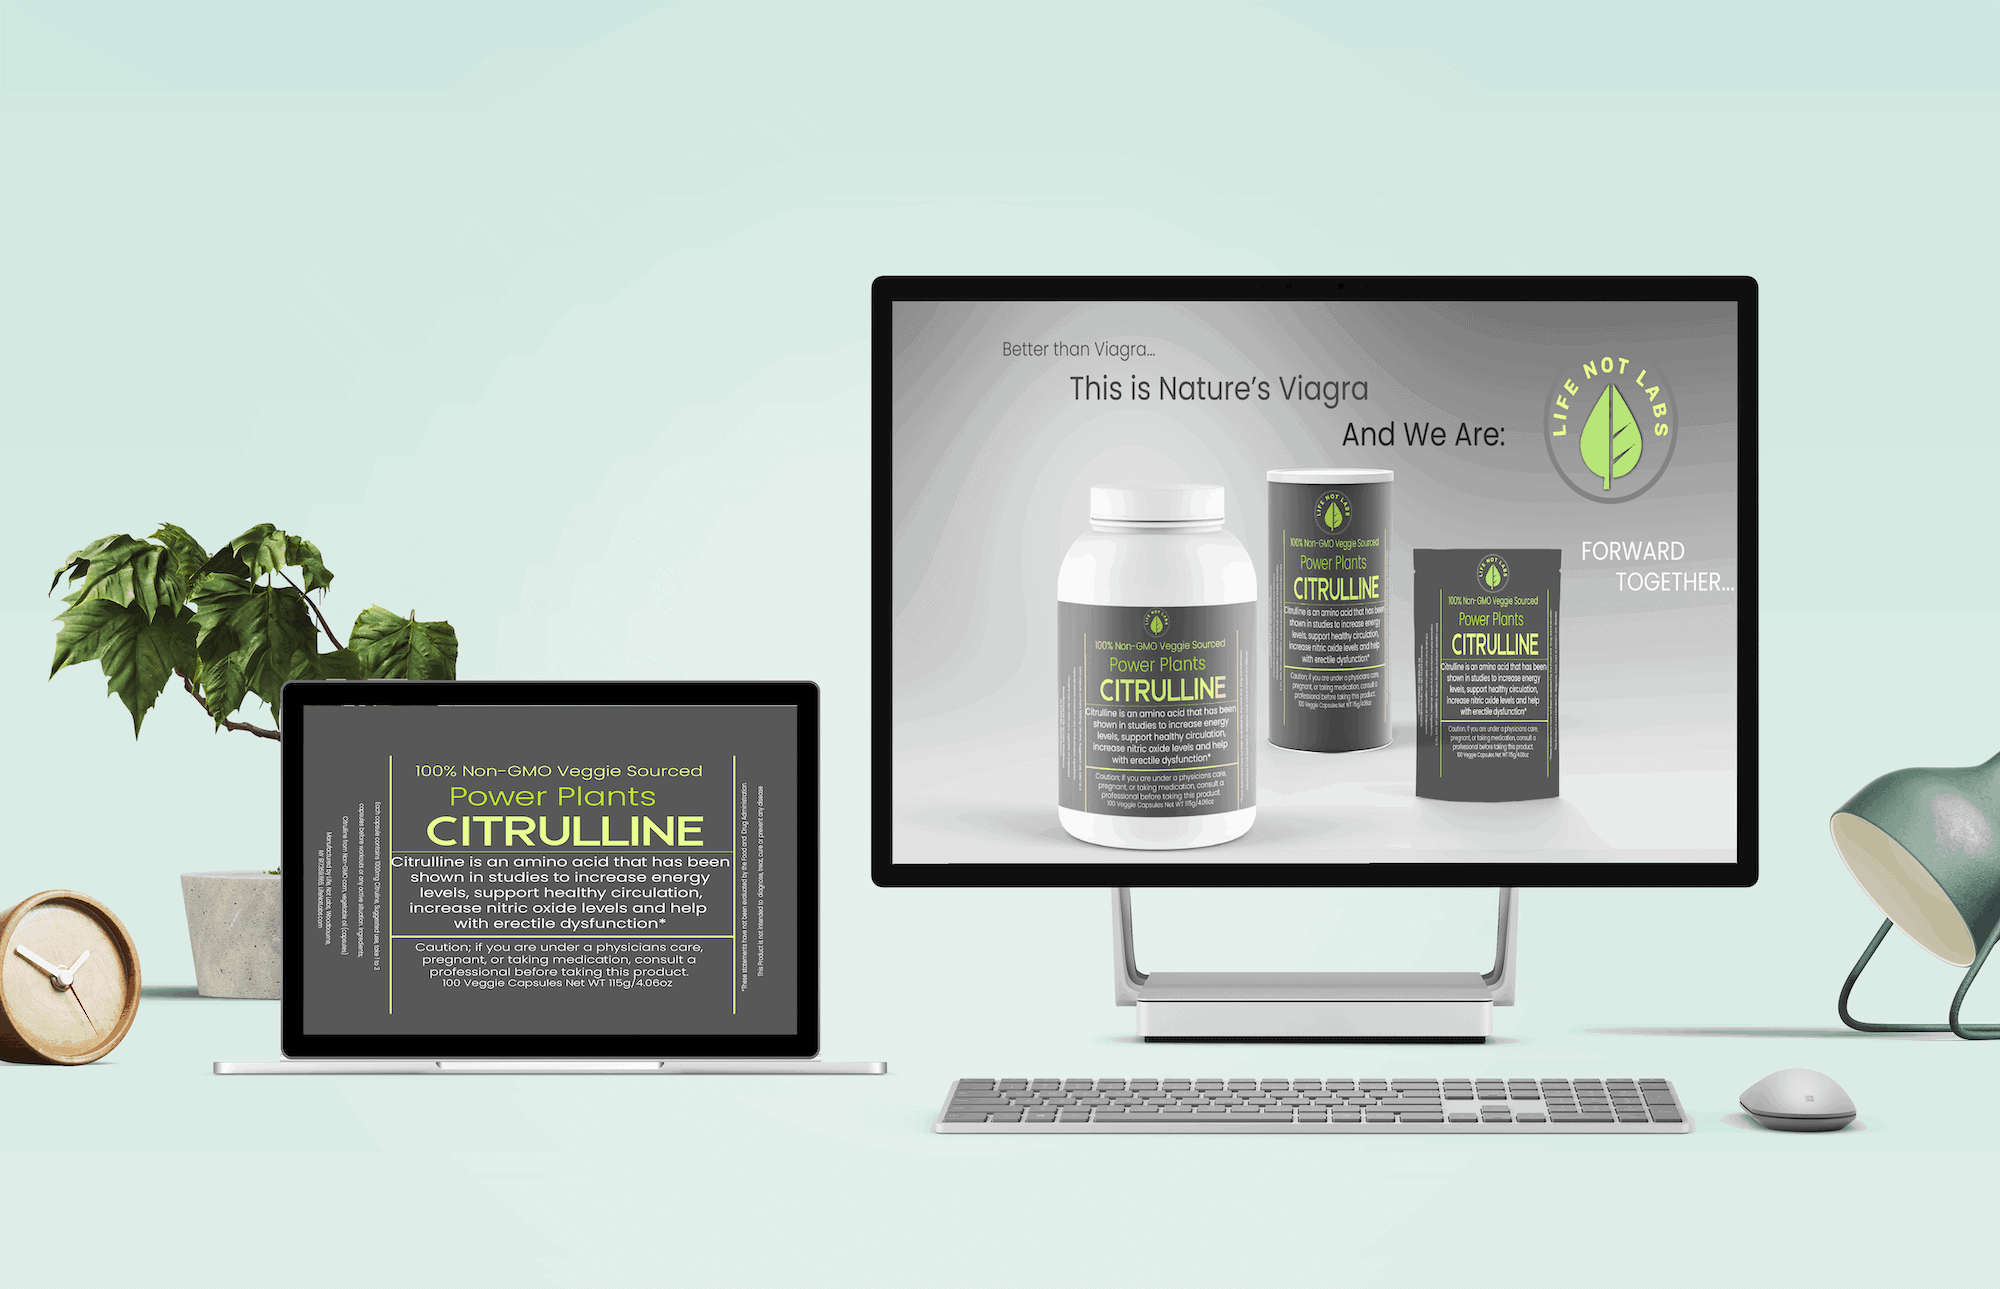 A desk with computer showing images of Life Not Labs Citrulline, nature's viagra Vitamins